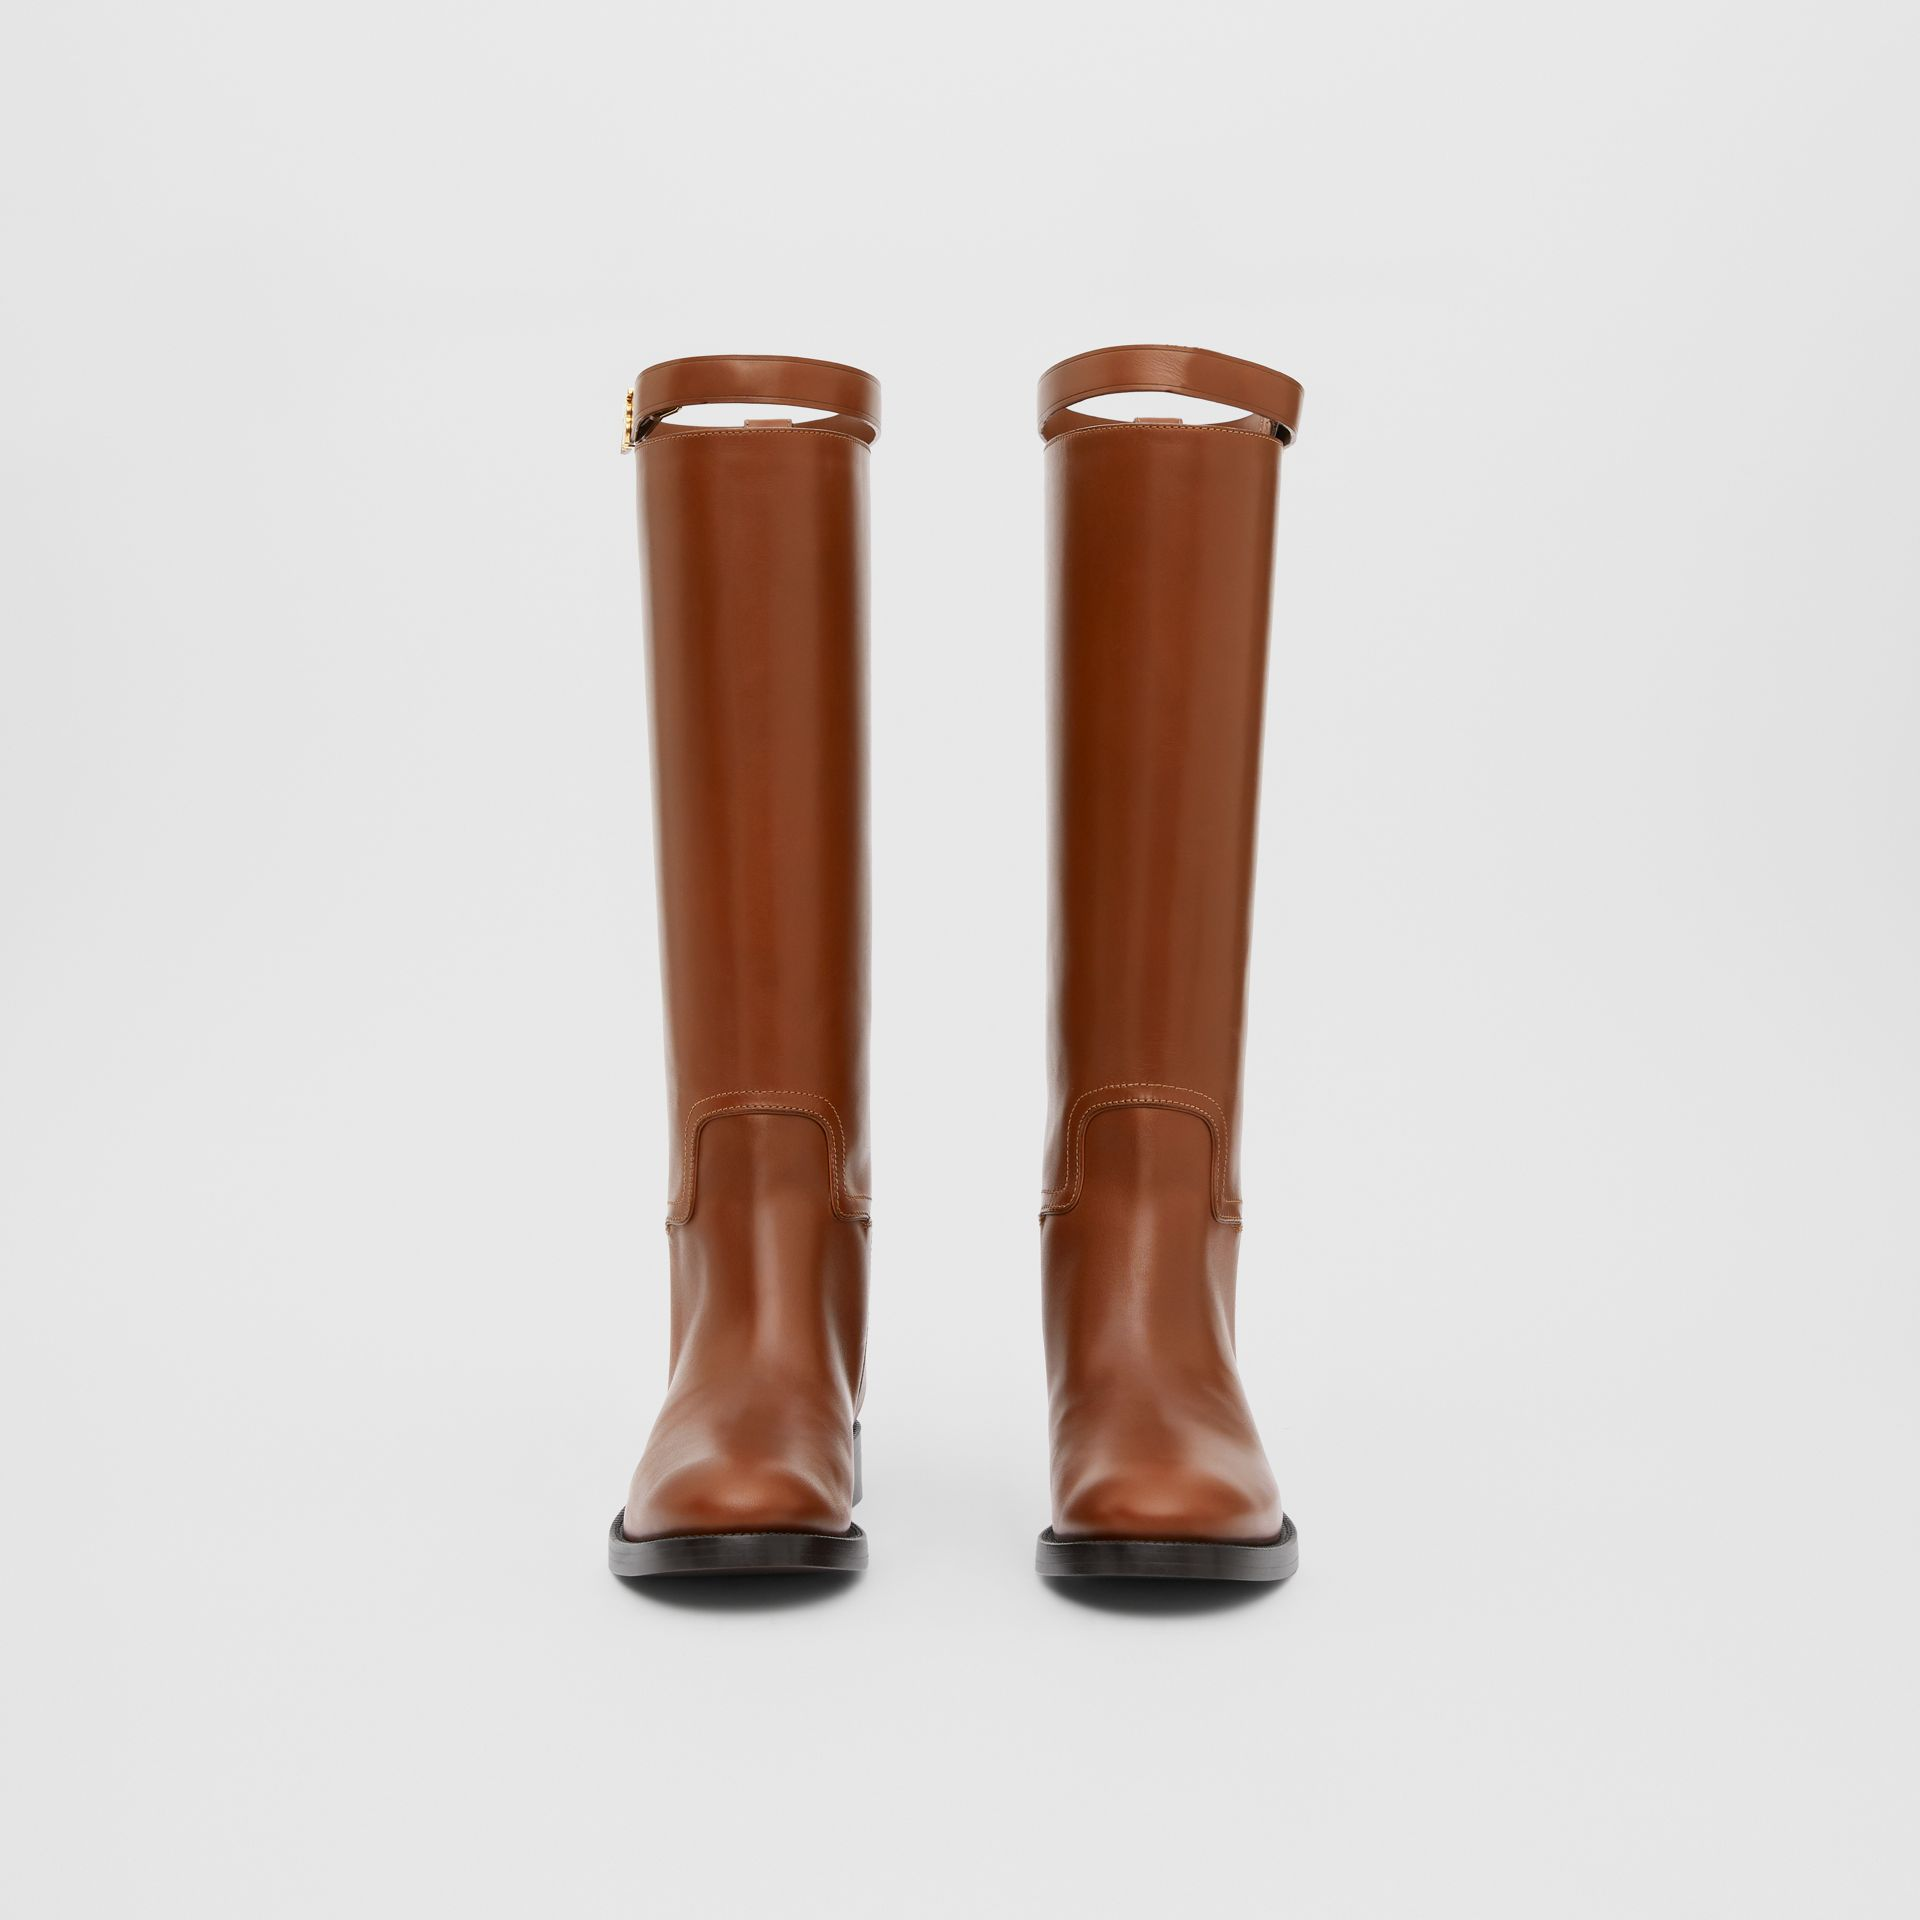 Monogram Motif Leather Knee-high Boots in Tan - Women | Burberry United Kingdom - gallery image 2